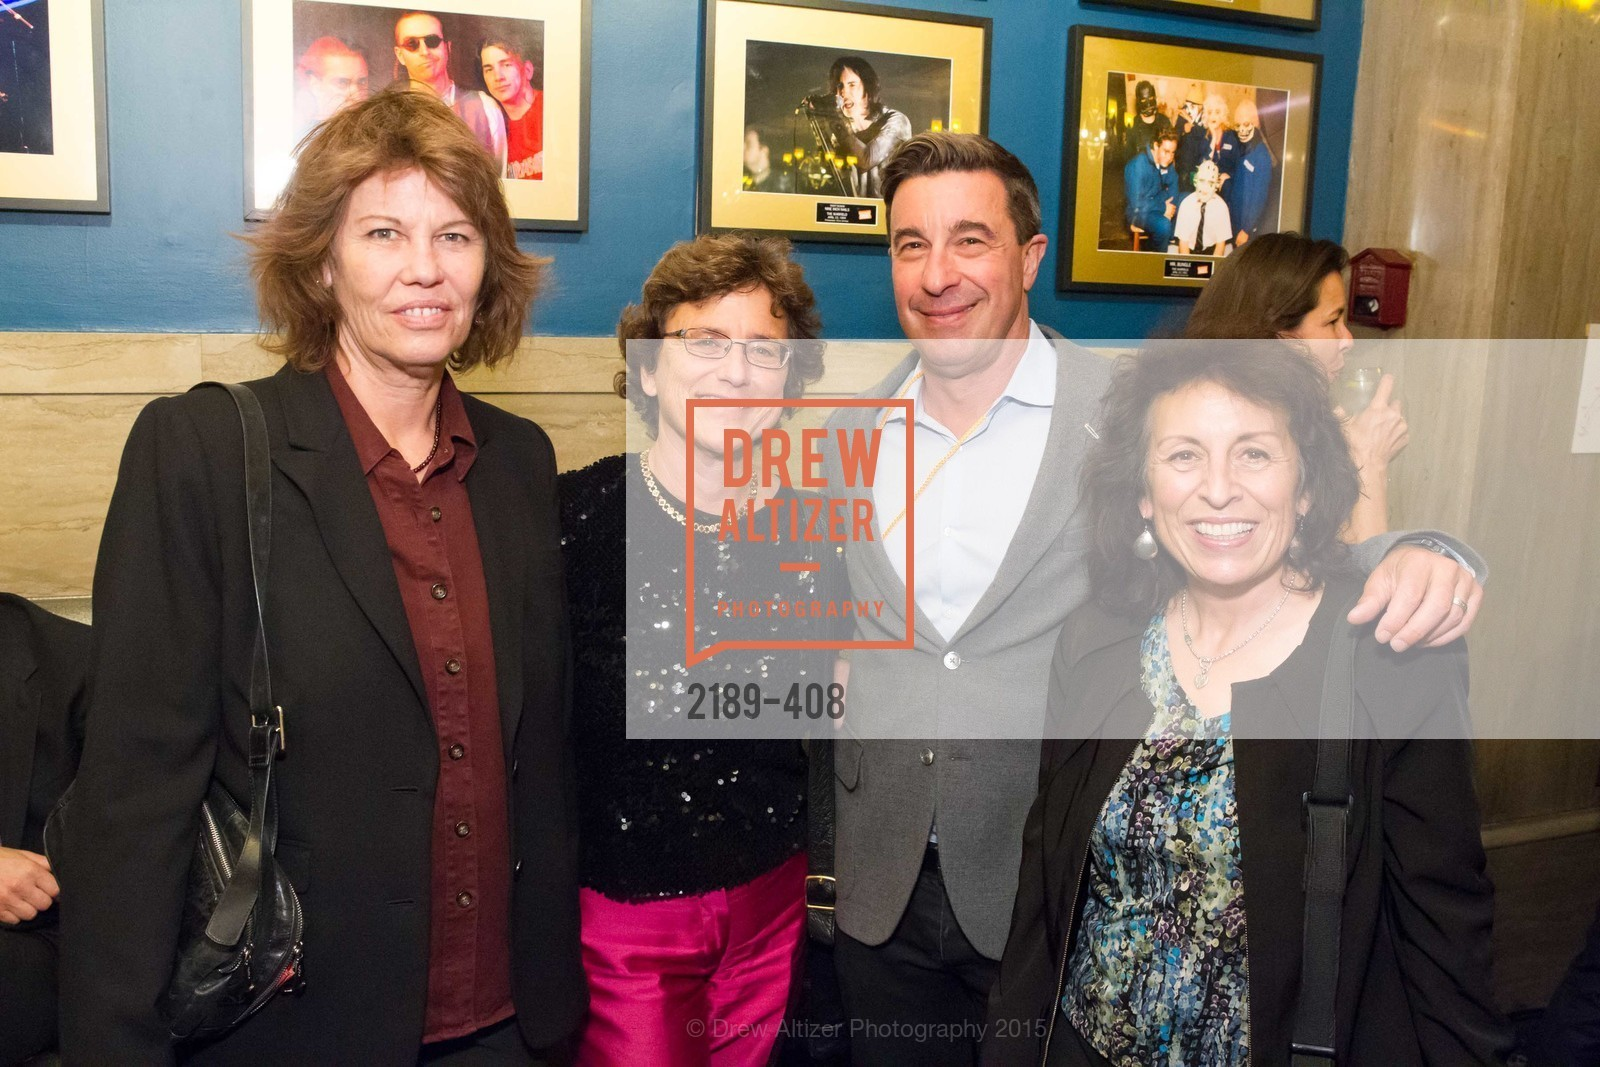 Leslie Larson, Margaret Cecchetti, Scott Schafer, Carla Trujillo, REDF's 2015 BENEFIT featuring JOURNEY, The Warfield Theatre. 982 Market St, October 22nd, 2015,Drew Altizer, Drew Altizer Photography, full-service agency, private events, San Francisco photographer, photographer california